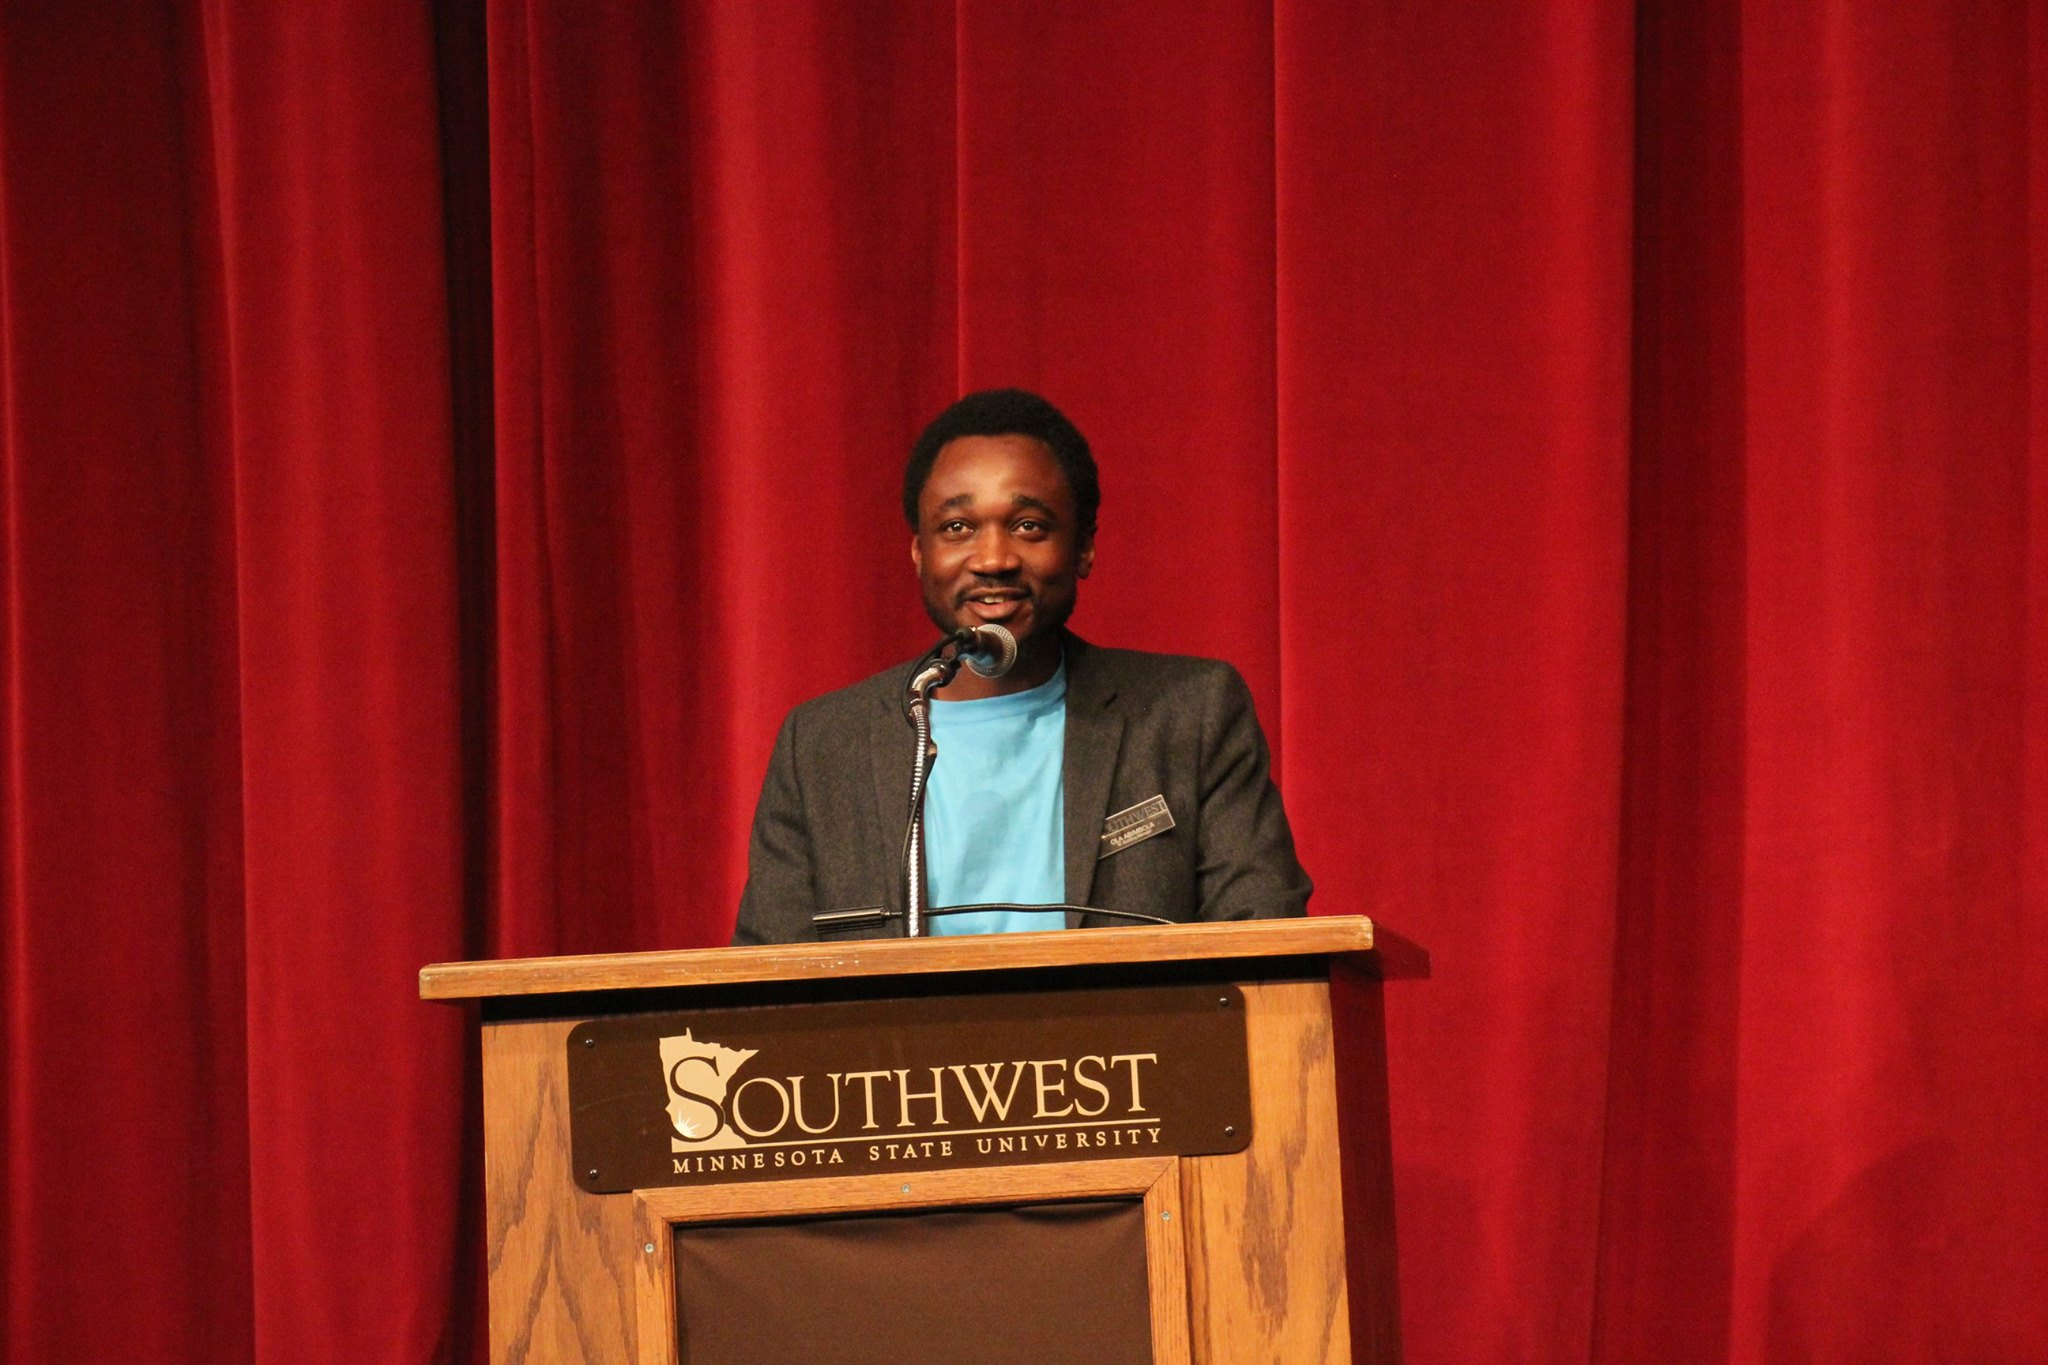 Ola Abimbola, our Campus Organizing Intern, speaking at the event. Photo taken by SMSU Today